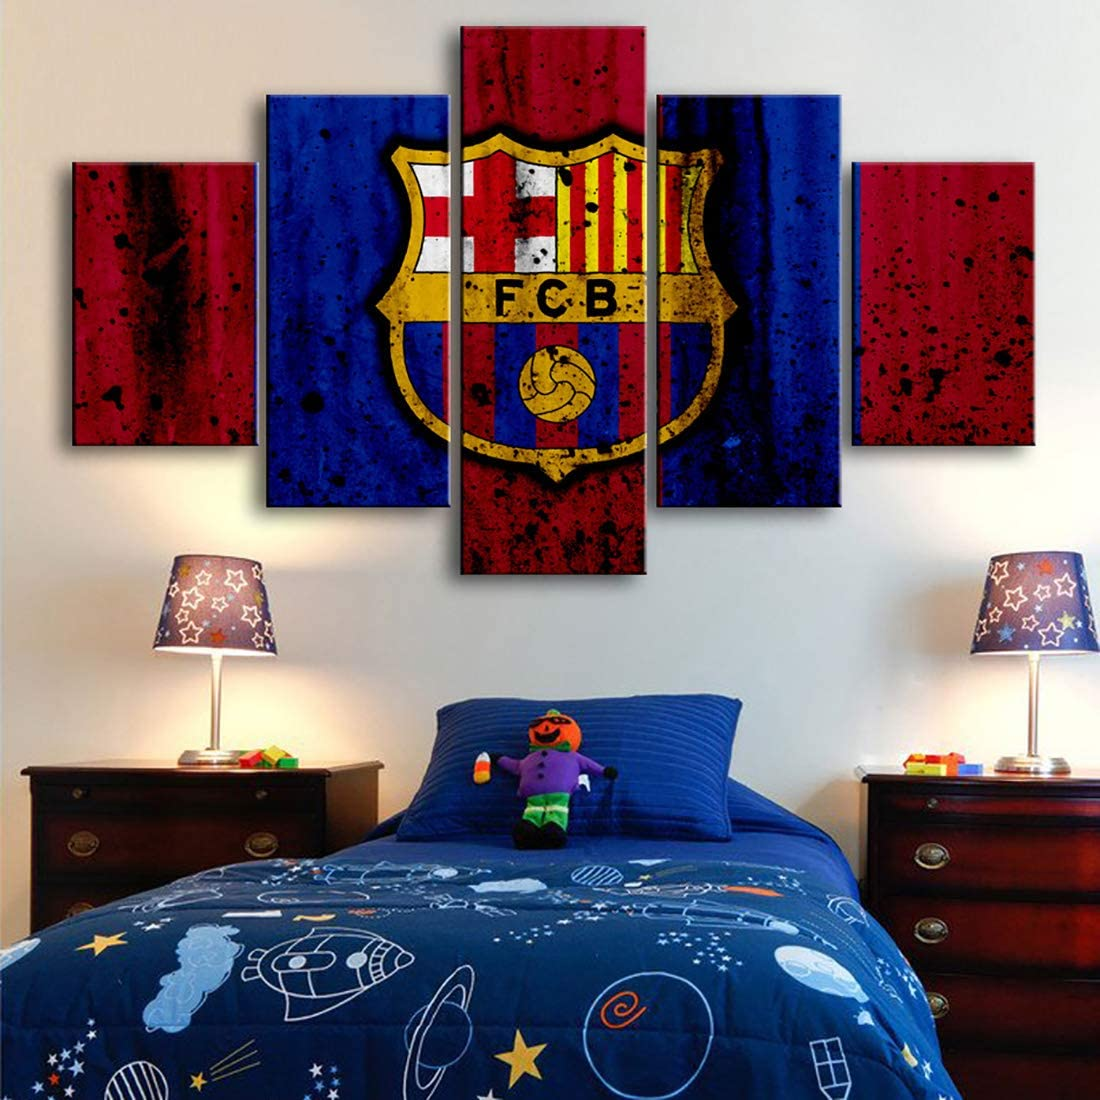 HSART Home Wall Art HD Football Club 5 Pieces Canvas Paintings Large Barcelona Flag Posters Prints Pictures Boys Bedroom Decor,A,30x40x2+30x80x1+30x60x2